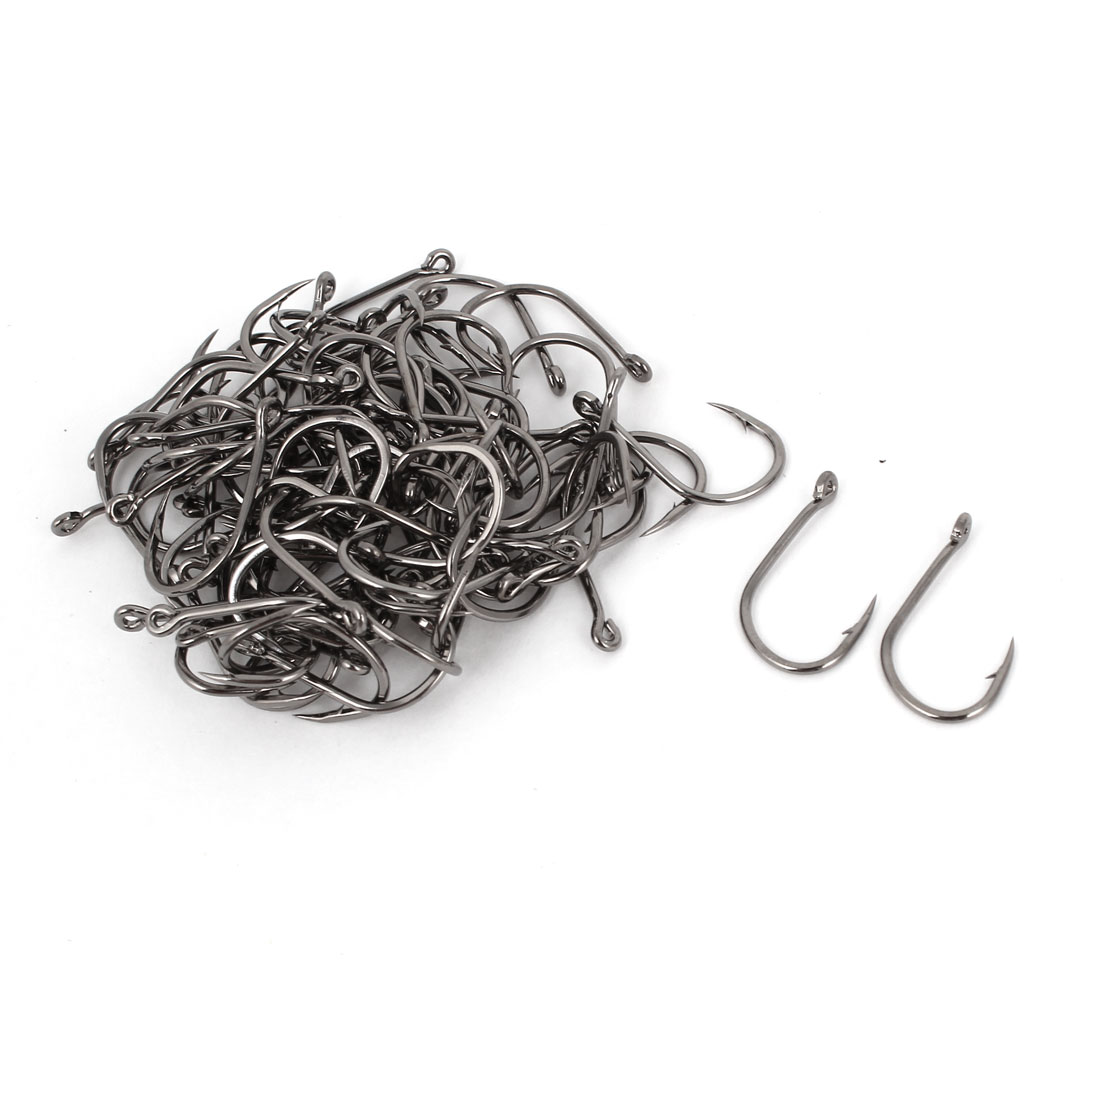 100 Pieces Dark Gray Metal Barbed Eyelet End Fishhook Fishing Hooks 9#